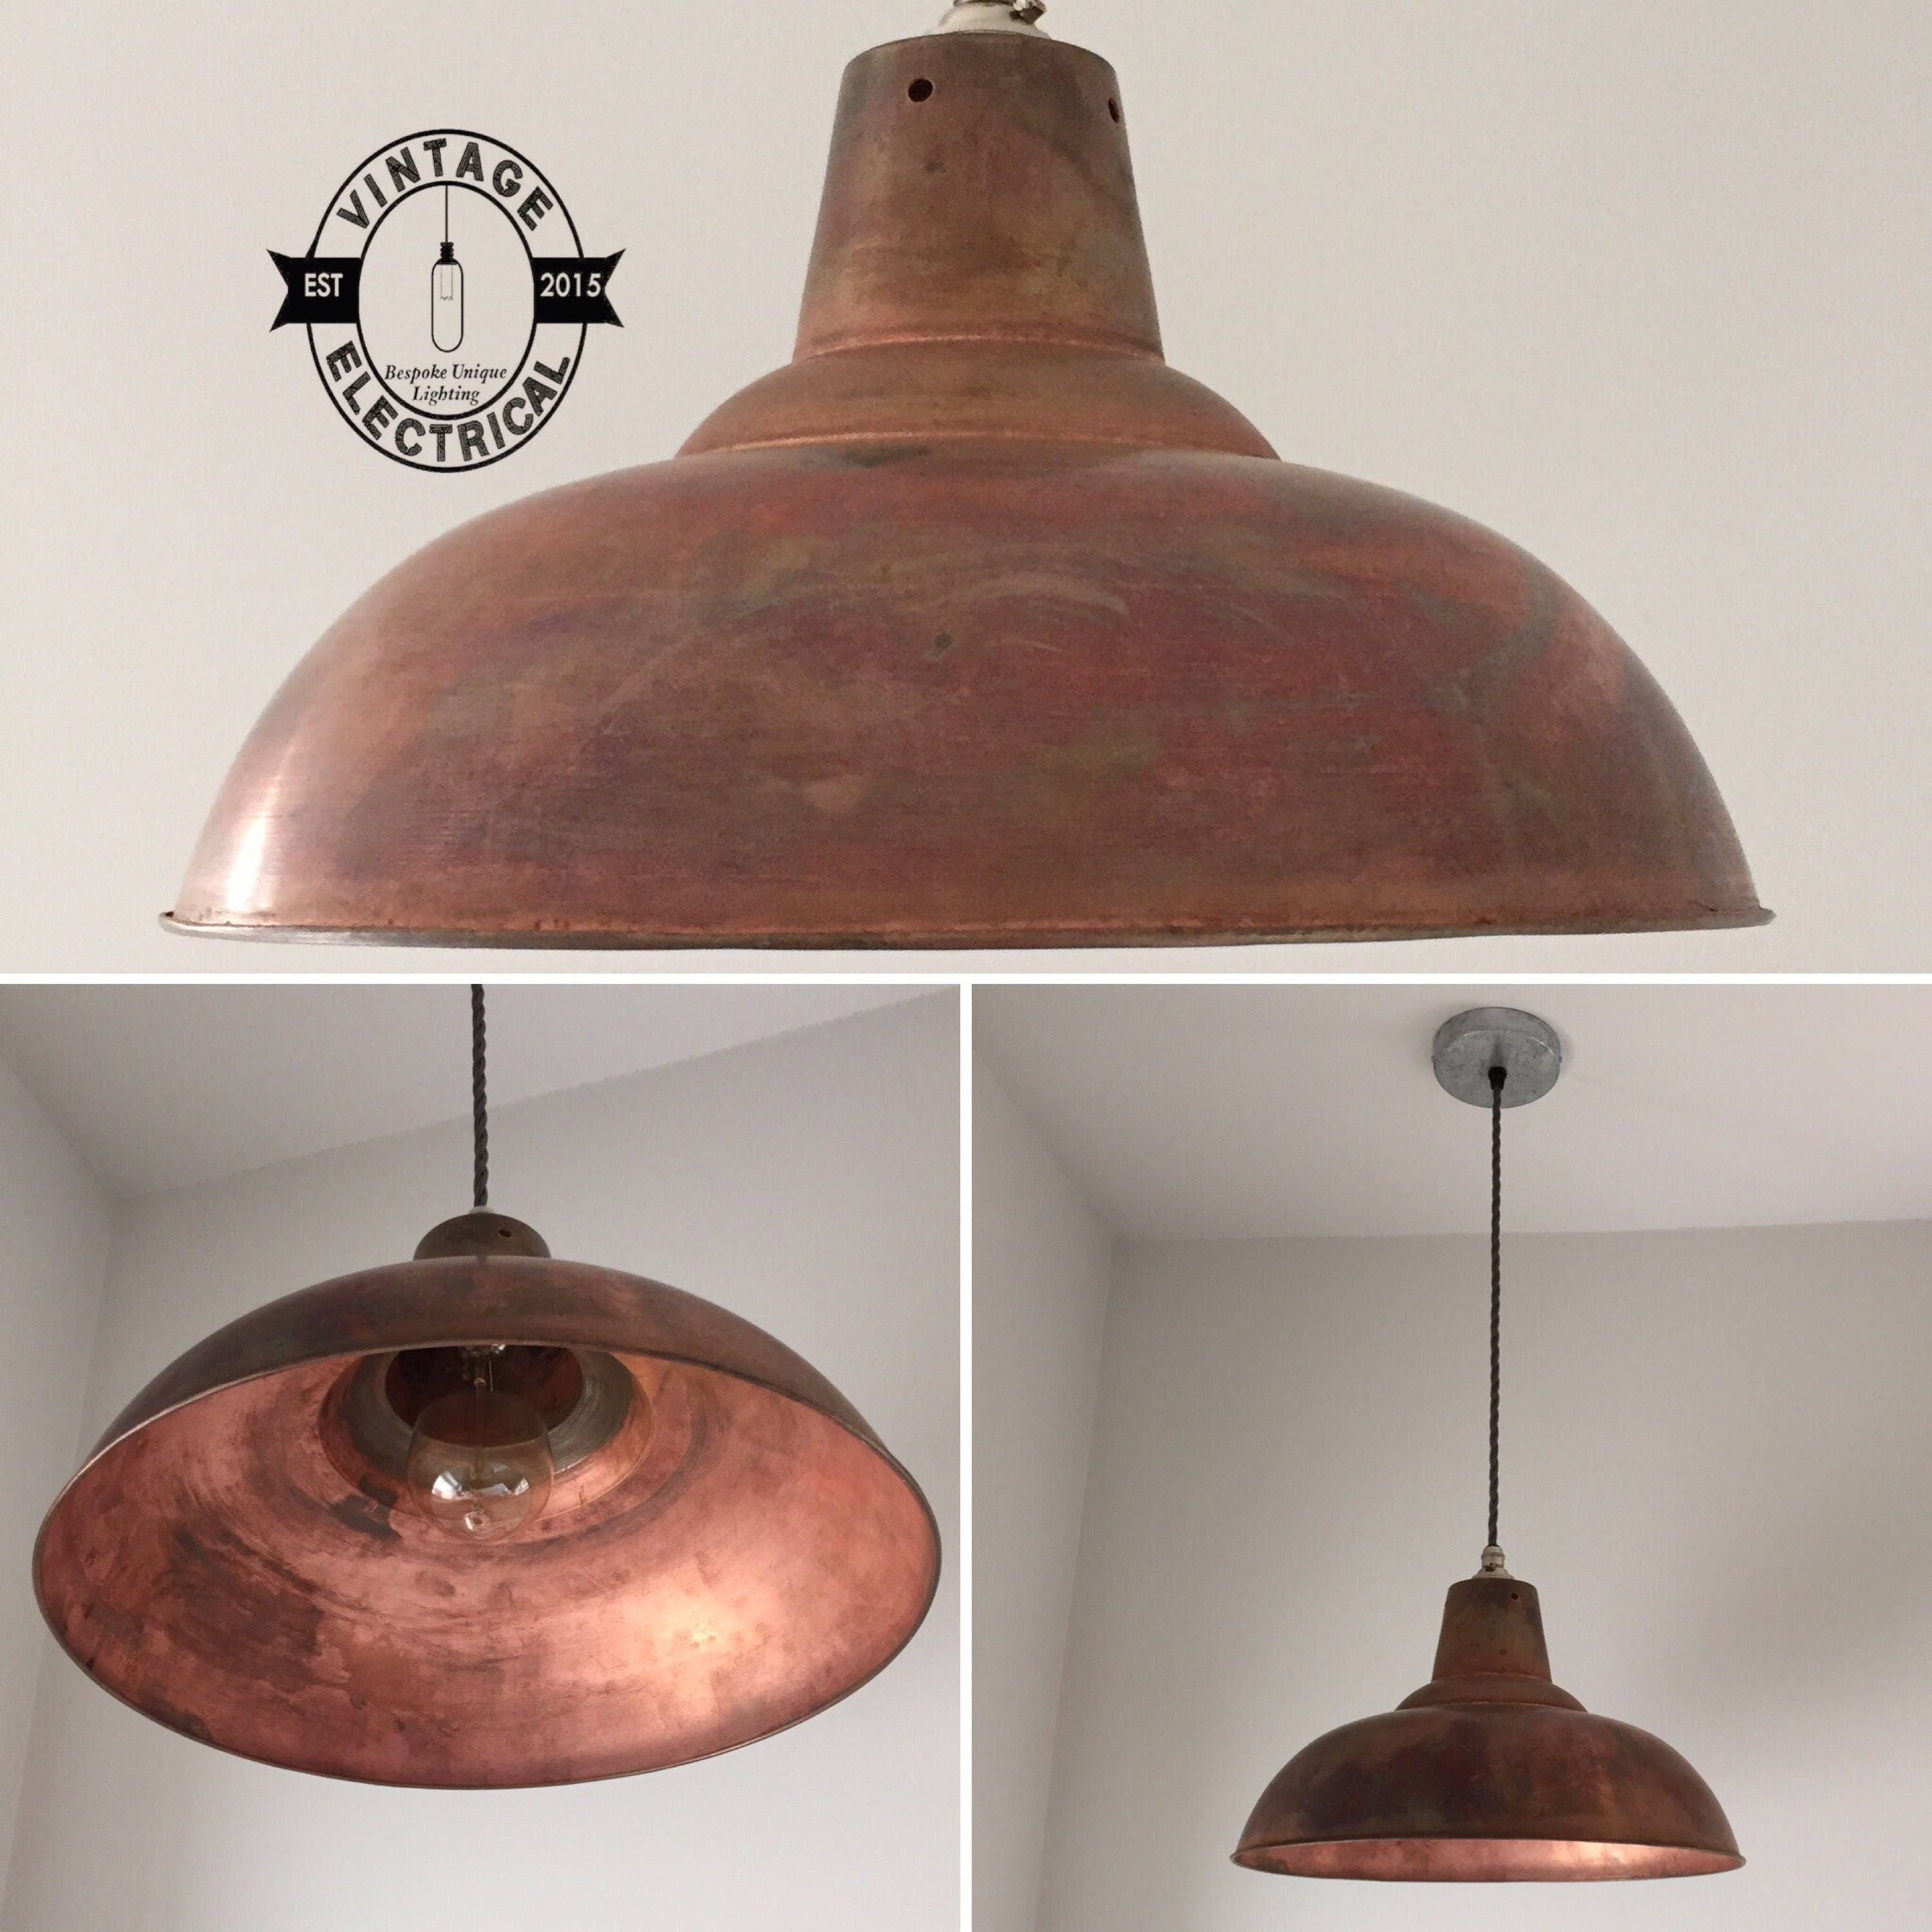 The Brancaster Copper Industrial Factory Shade Light